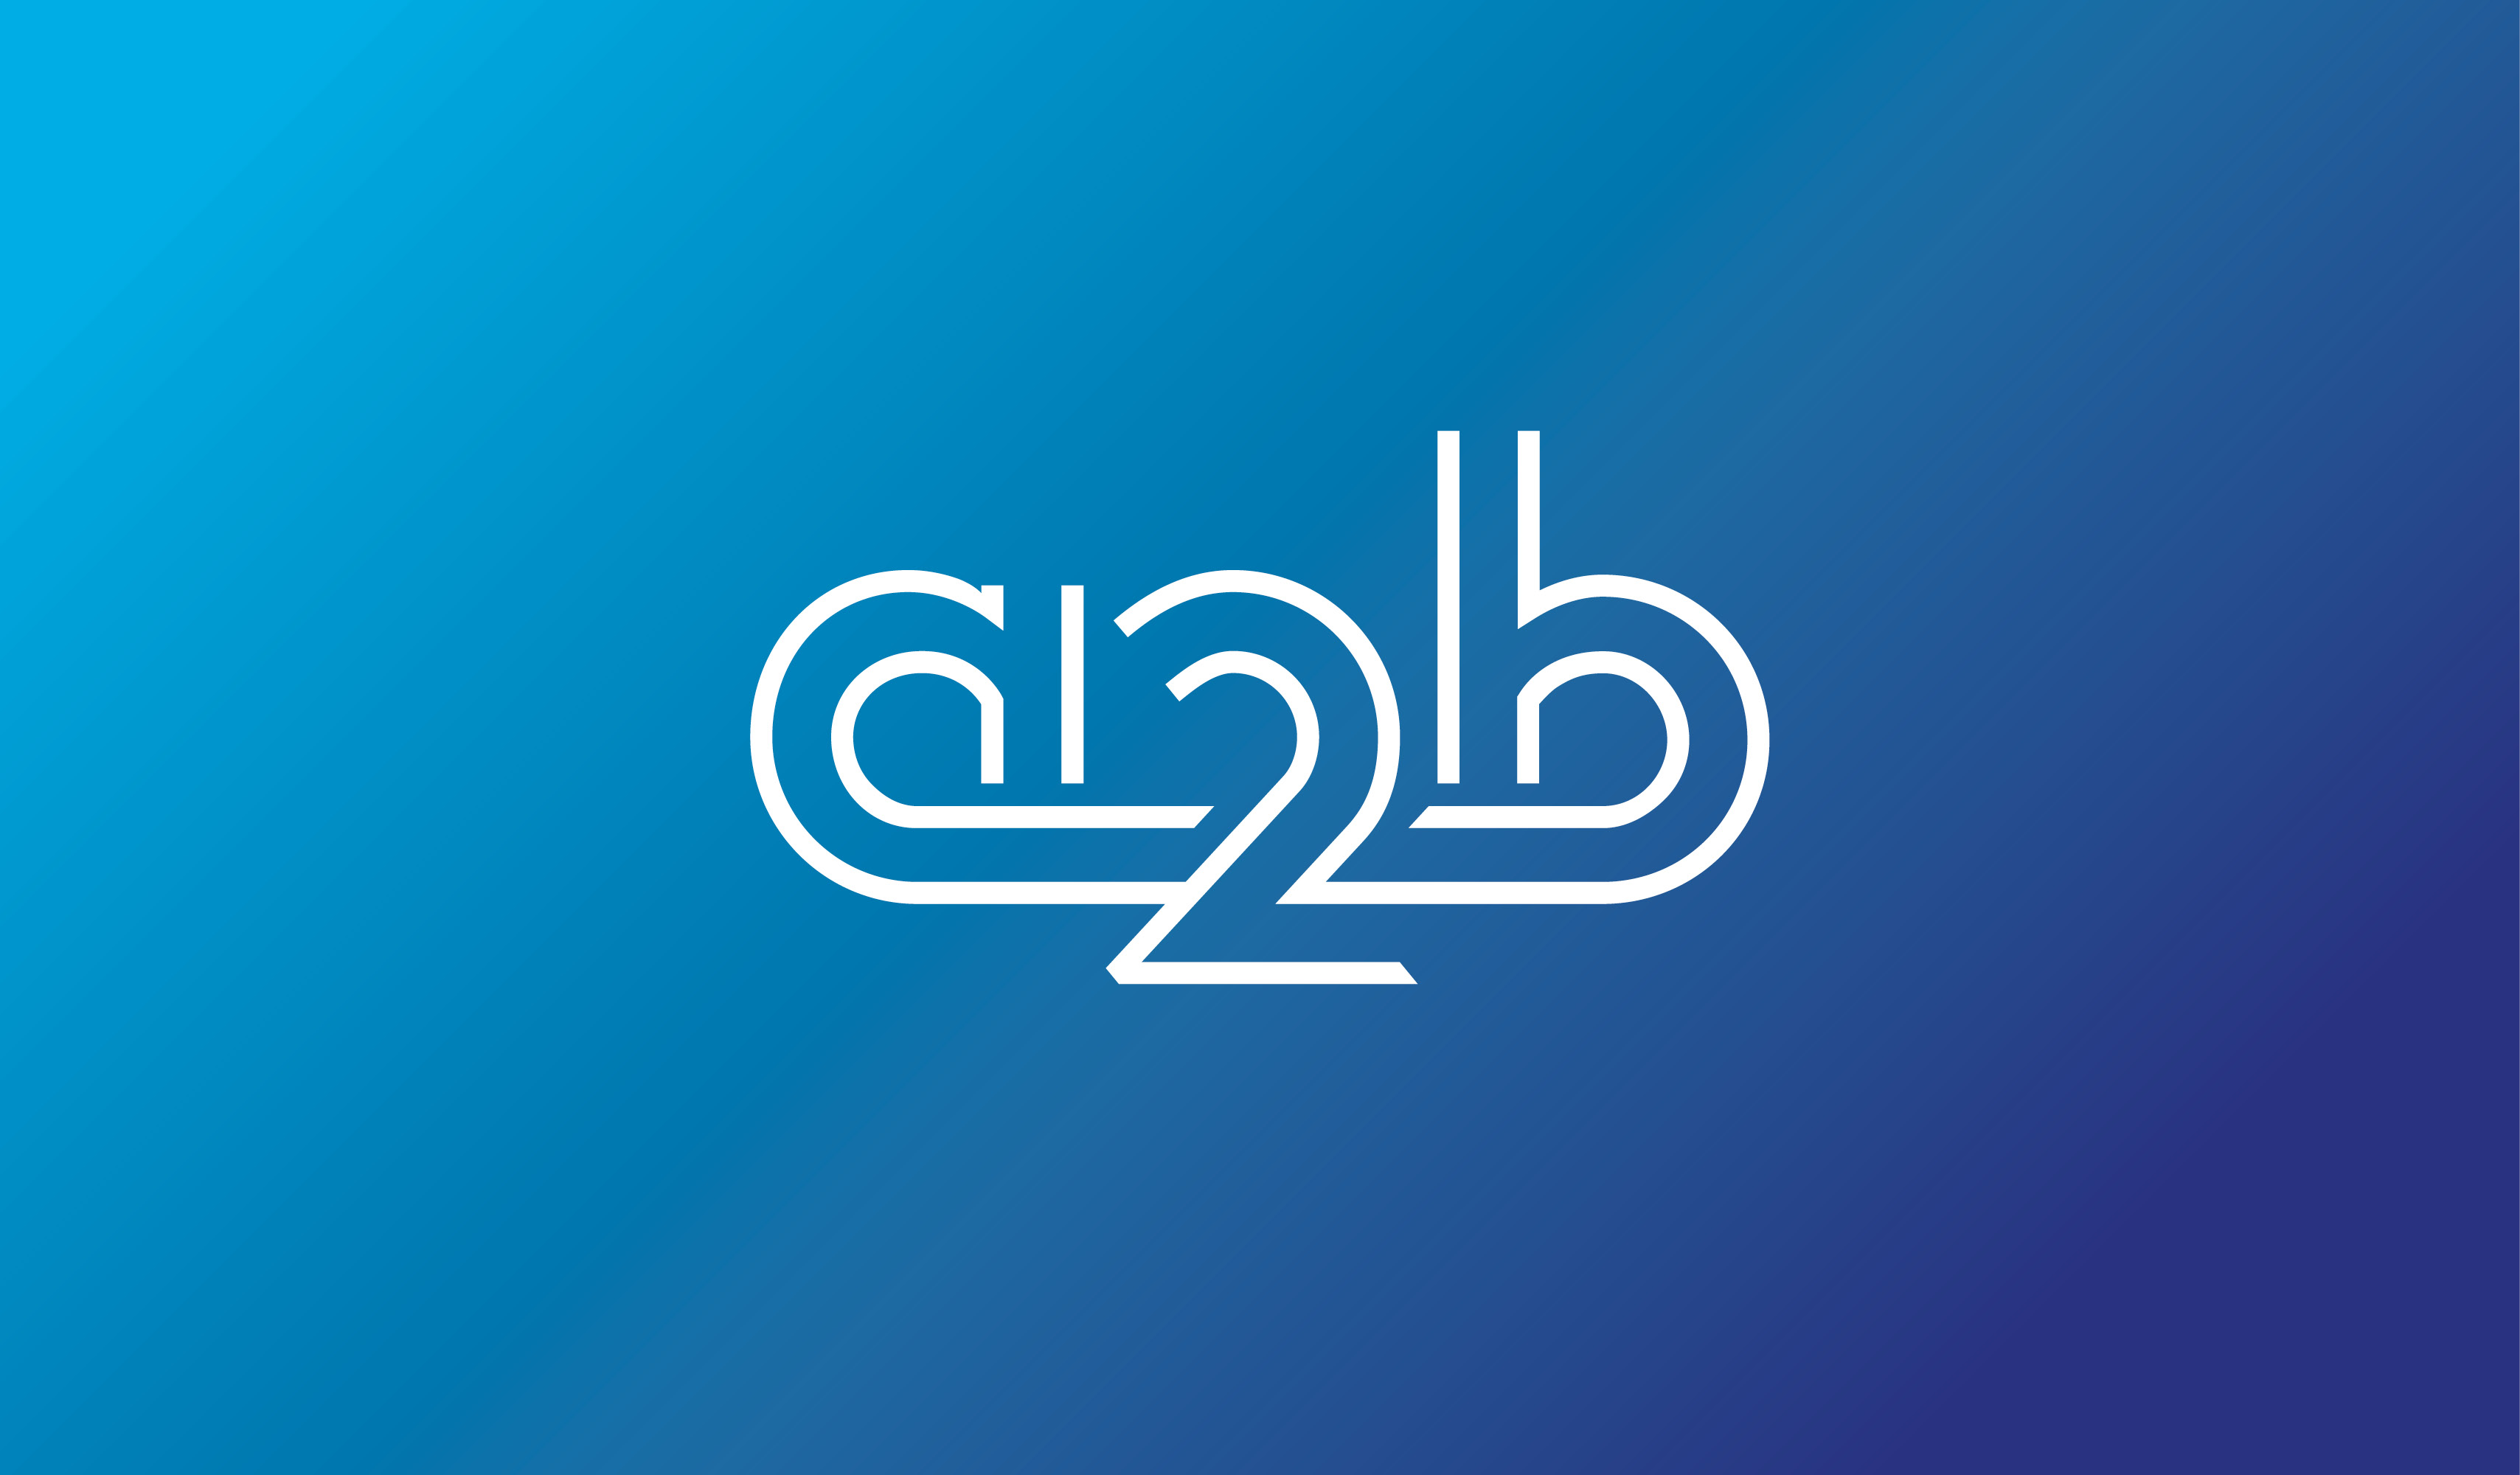 Cabcharge to A2B – A Visionary Direction